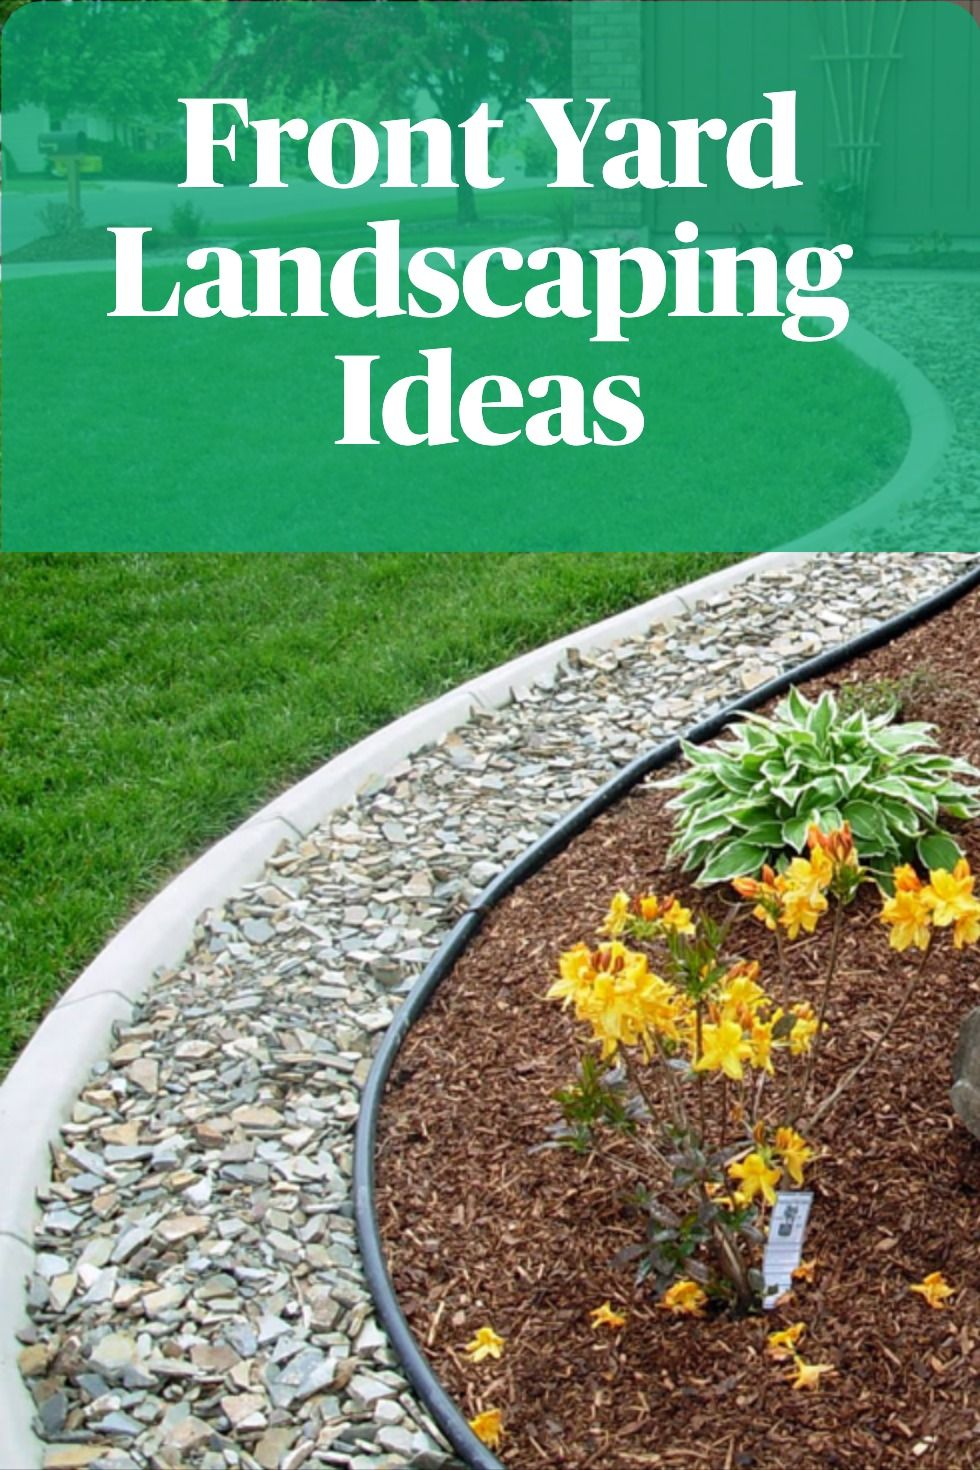 Front Yard Landscaping Ideas In 2020 With Images Landscaping On A Hill Front Yard Landscaping Landscaping Inspiration